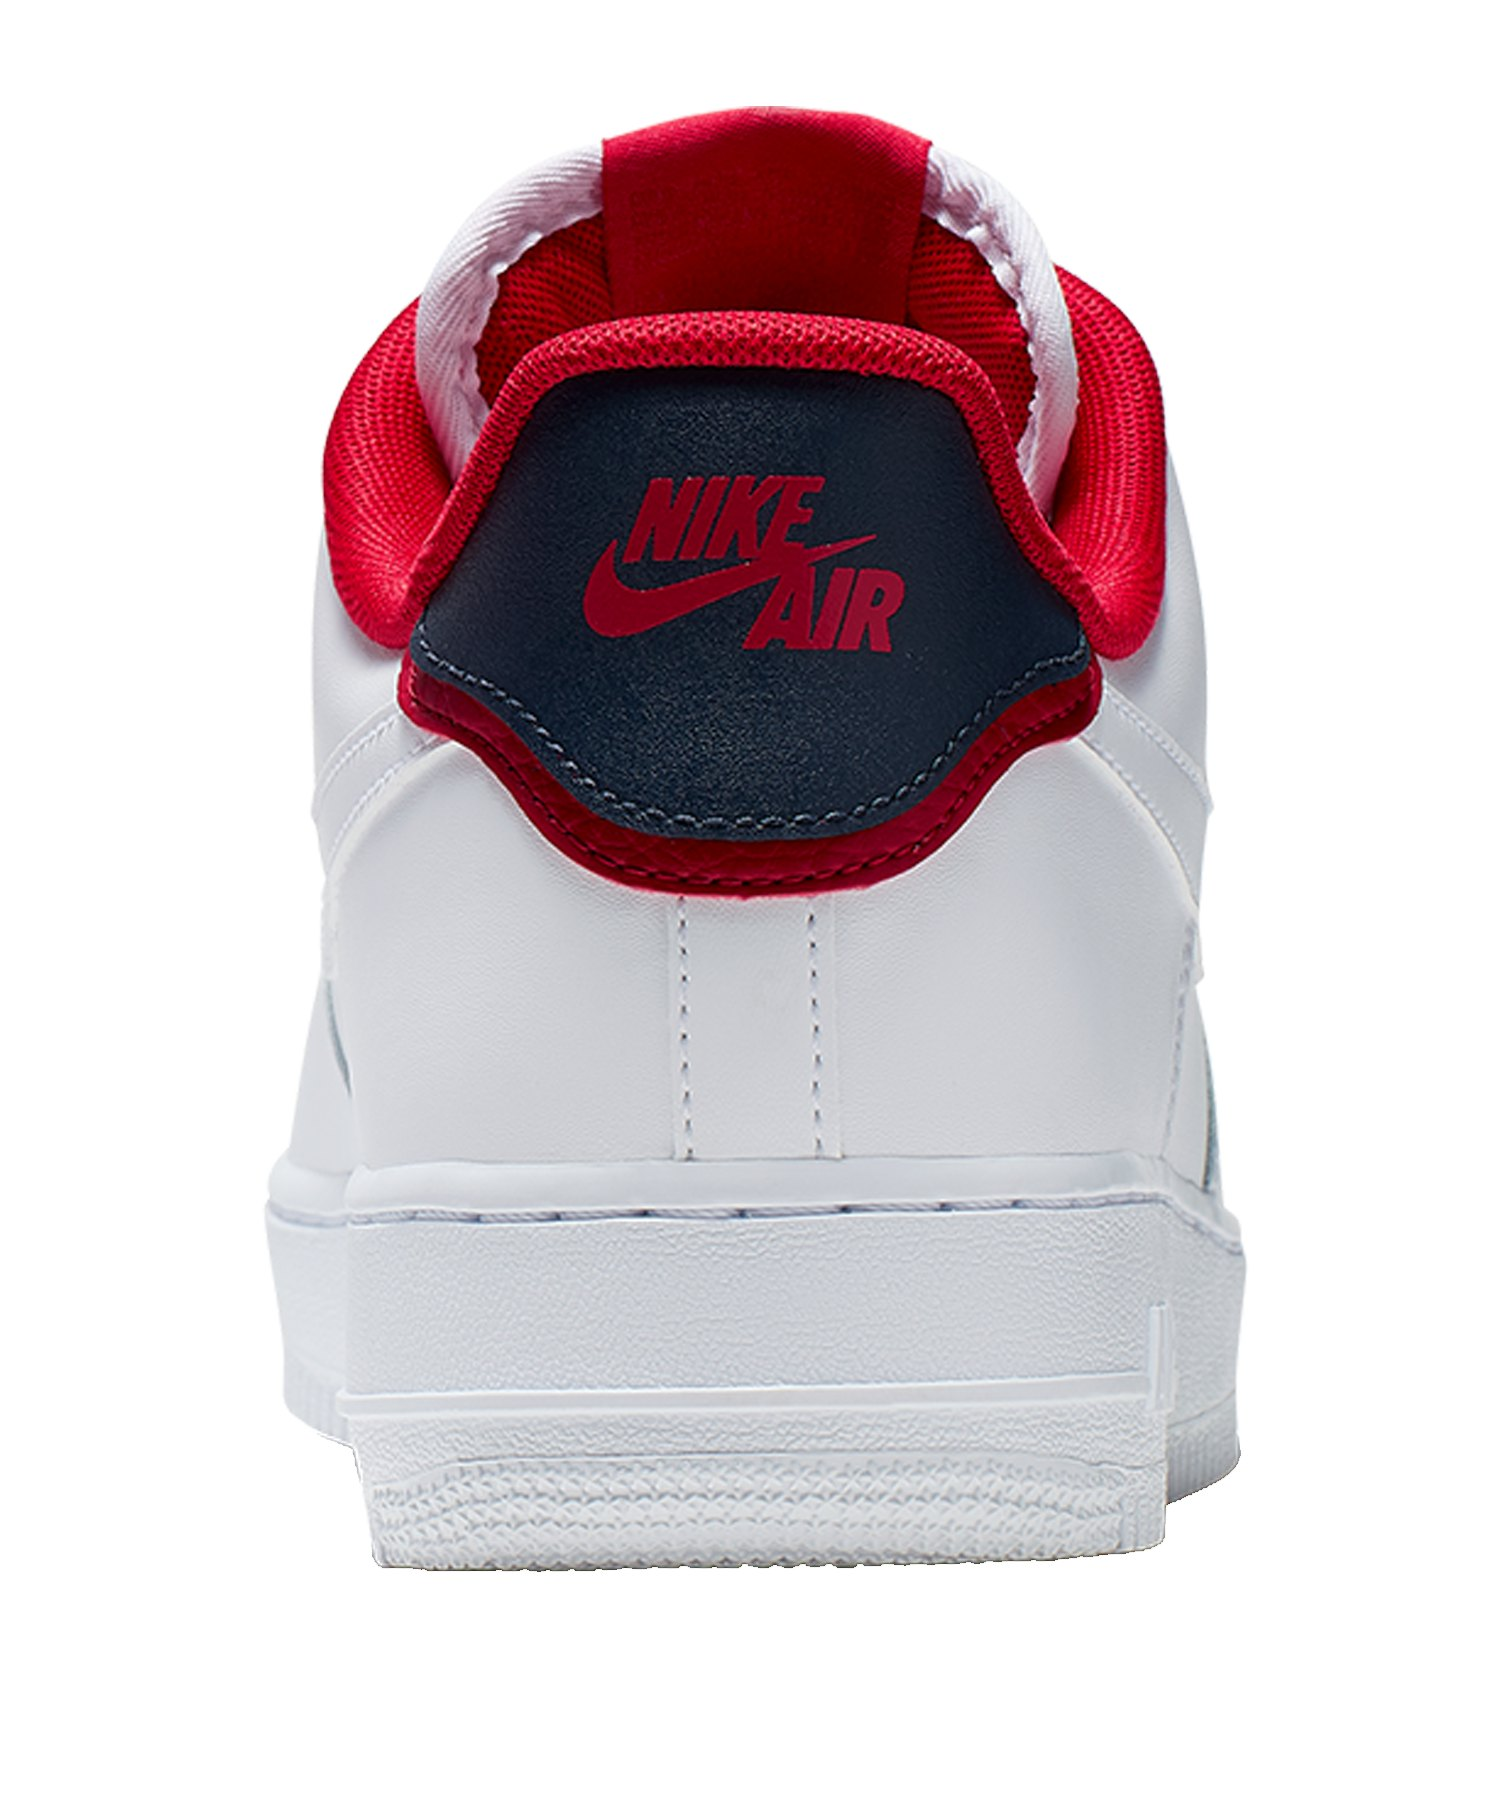 competitive price 70bf6 06670 ... Nike Air Force 1 07 LV8 Sneaker Weiss Blau F100 - Weiss ...